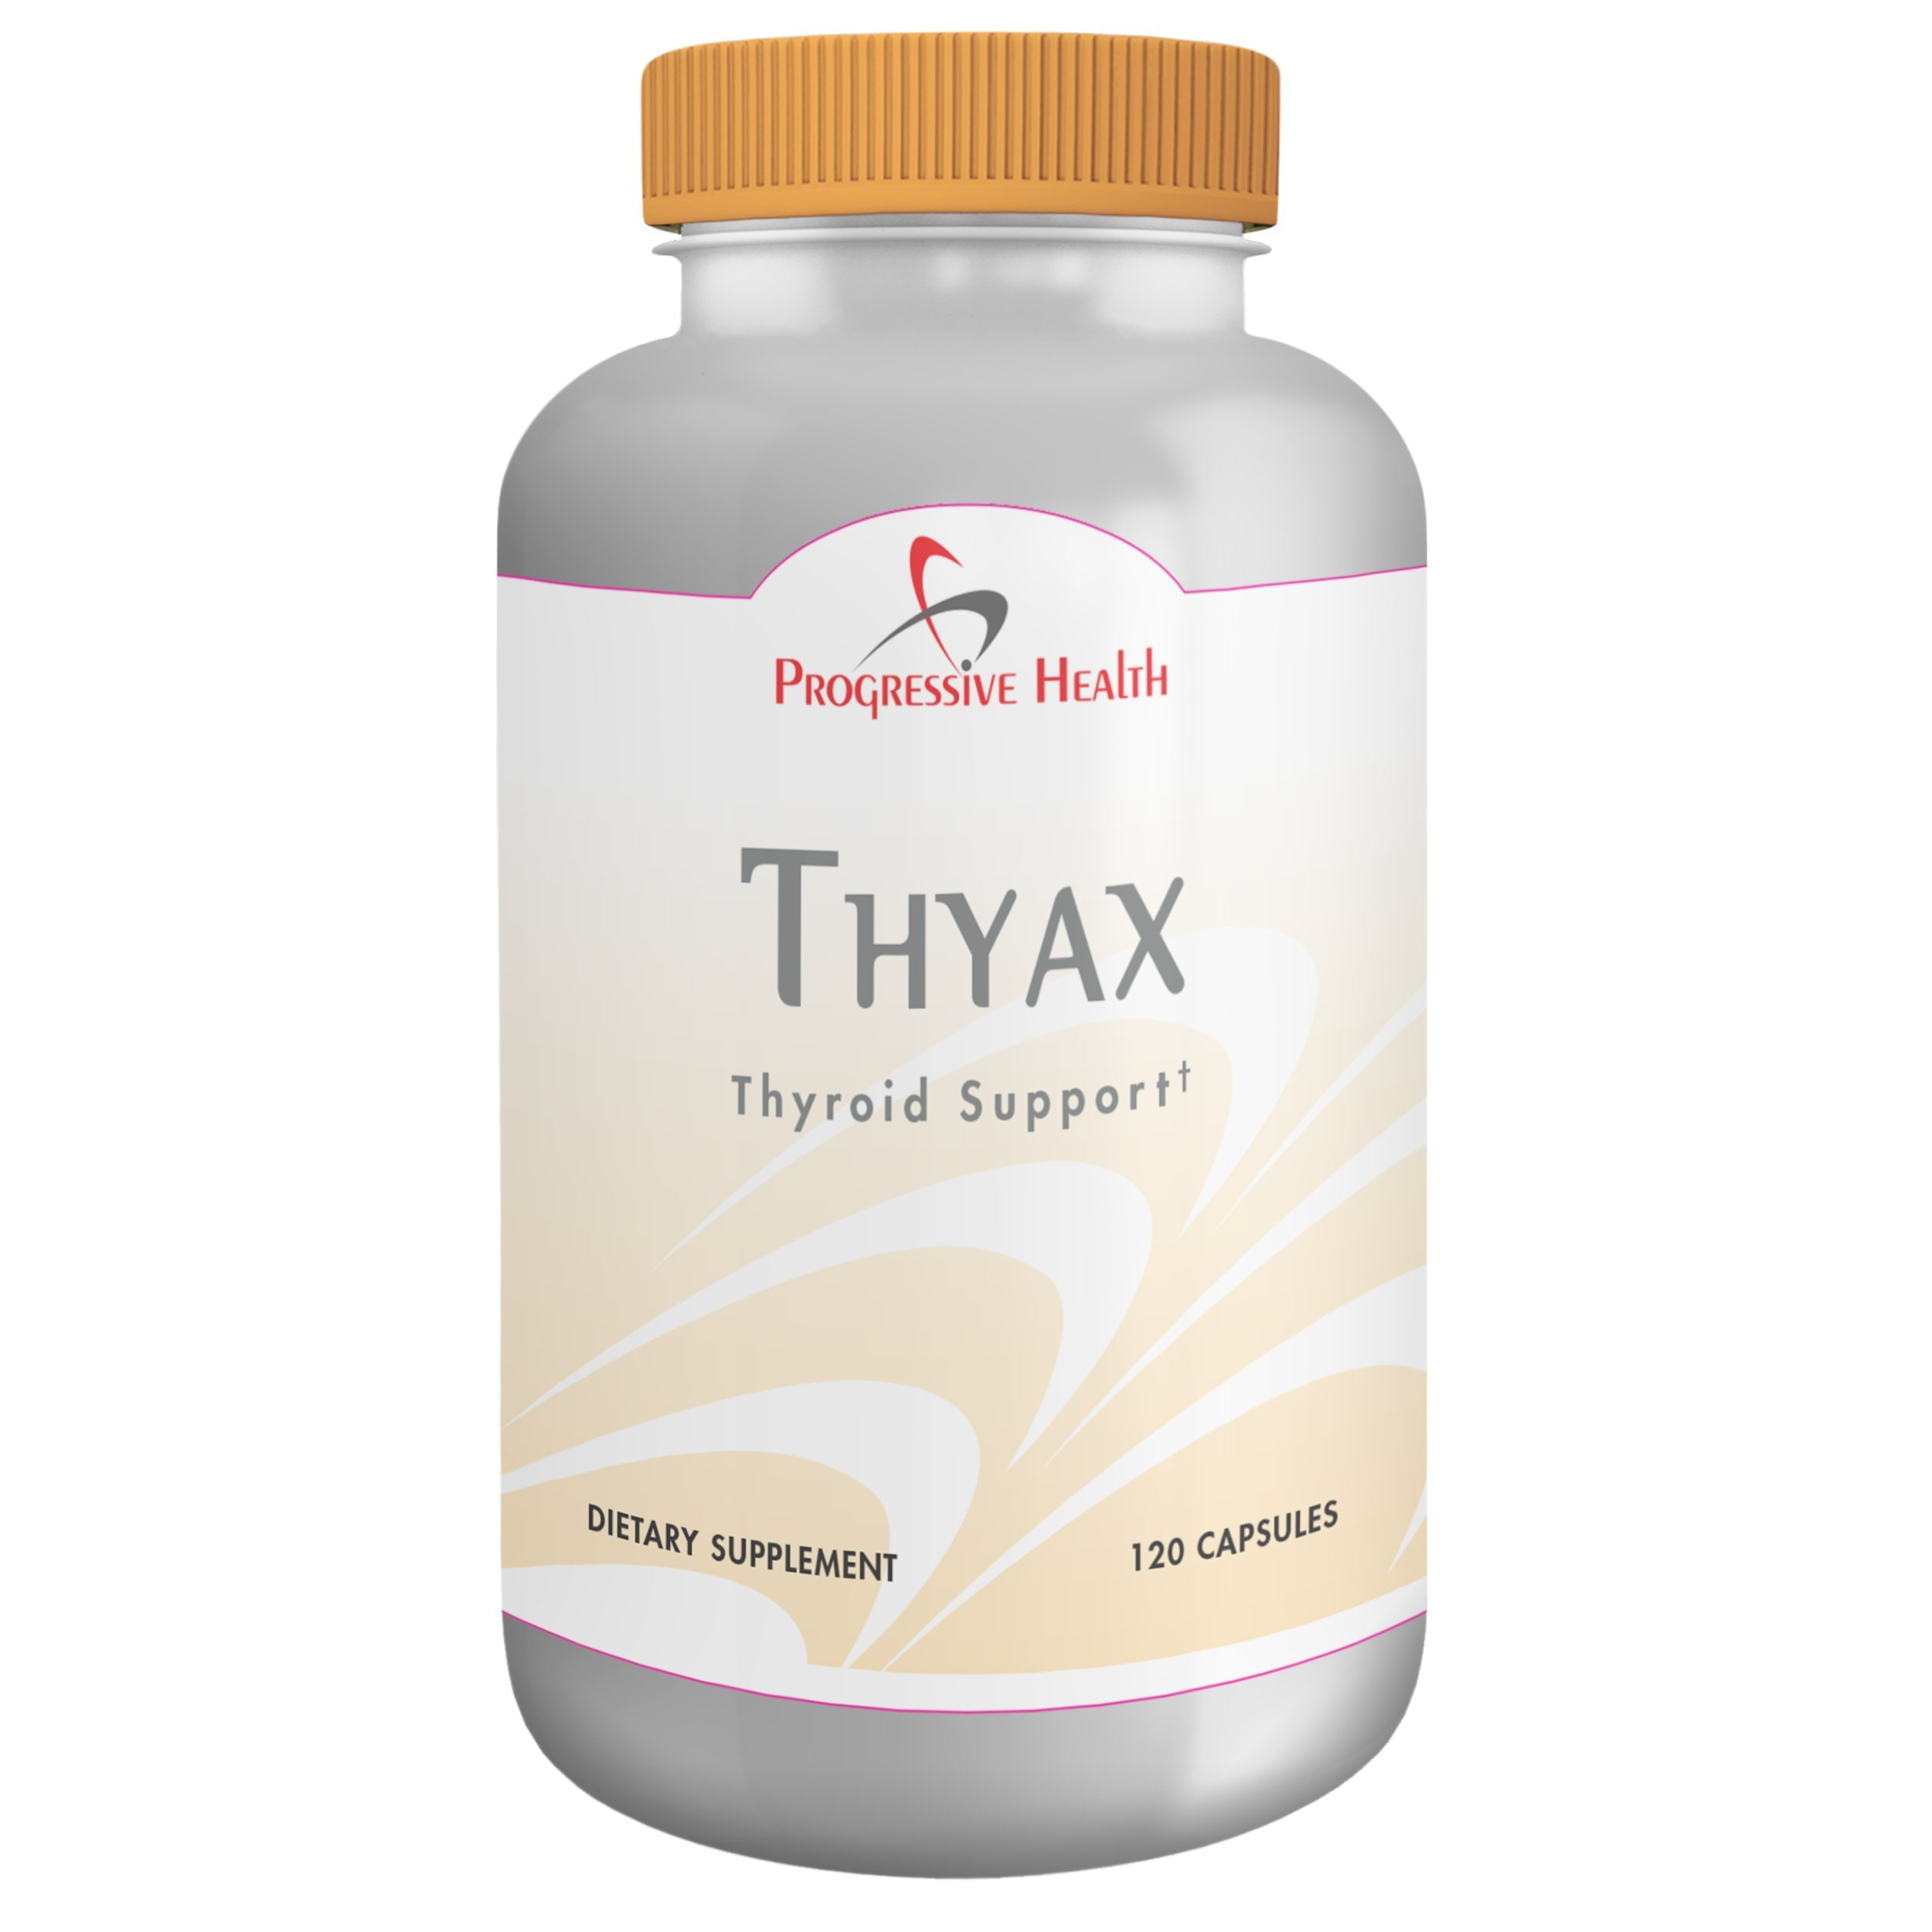 Hypothyroid Support Supplement: If You Have a Low Thyroid, This Vitamin Can Help - One Month Supply